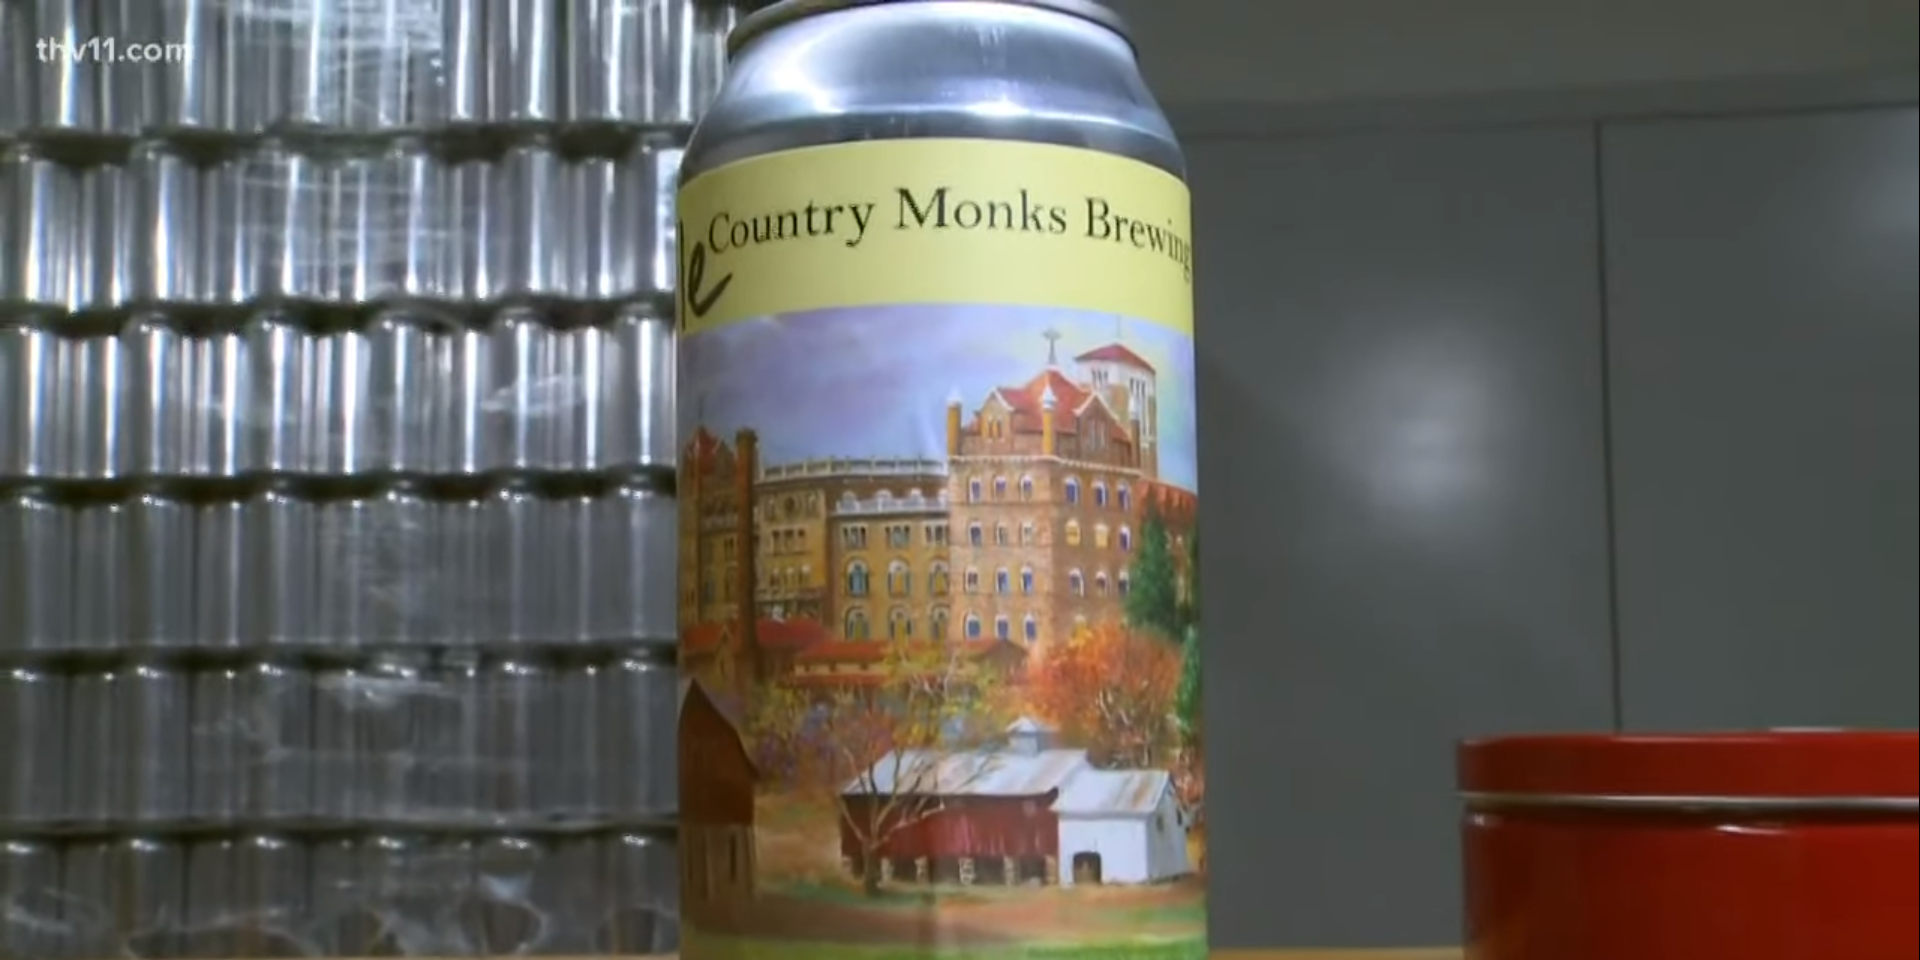 Country Monks Brewing